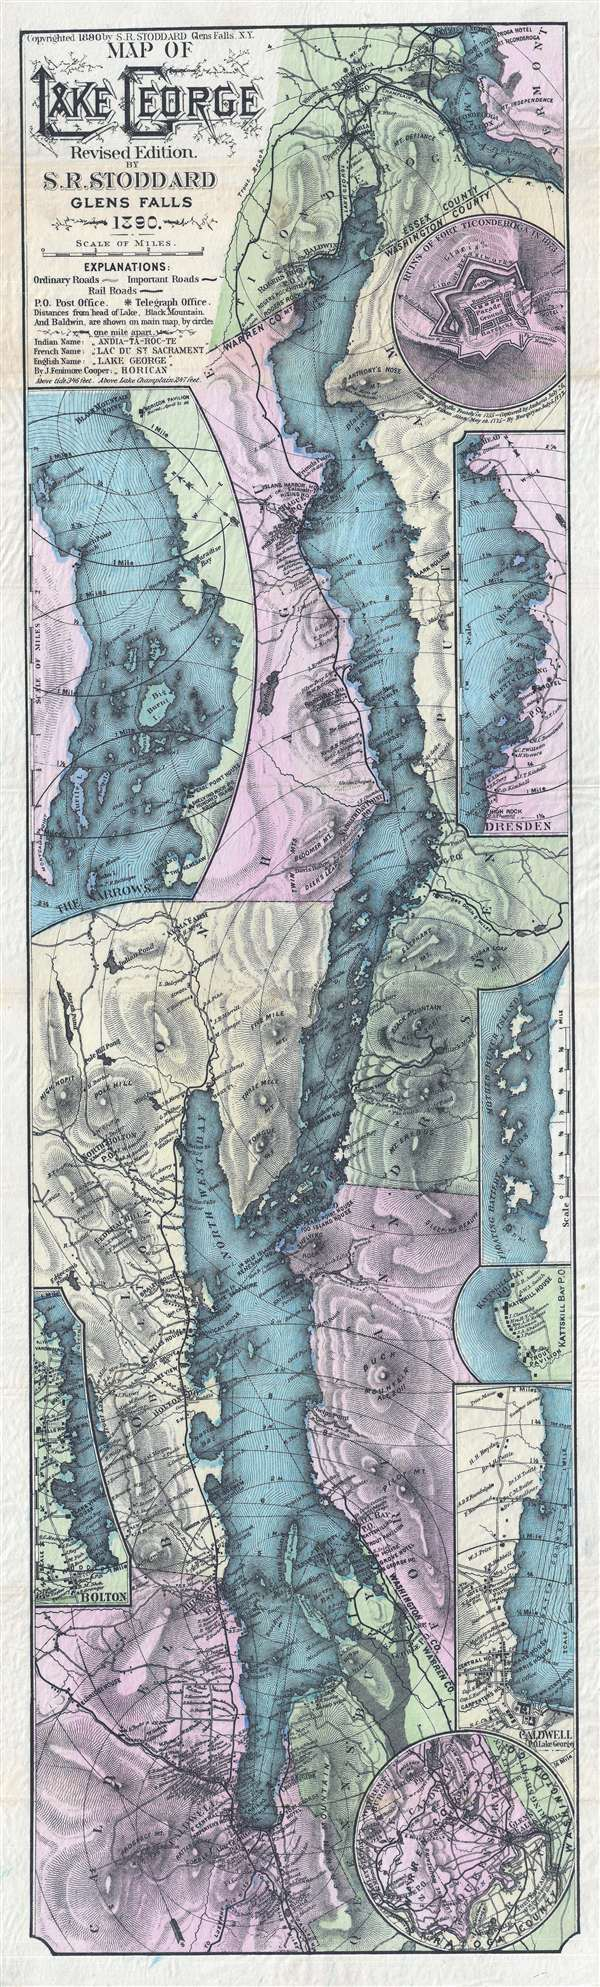 1890 Stoddard Map of Lake George, New York